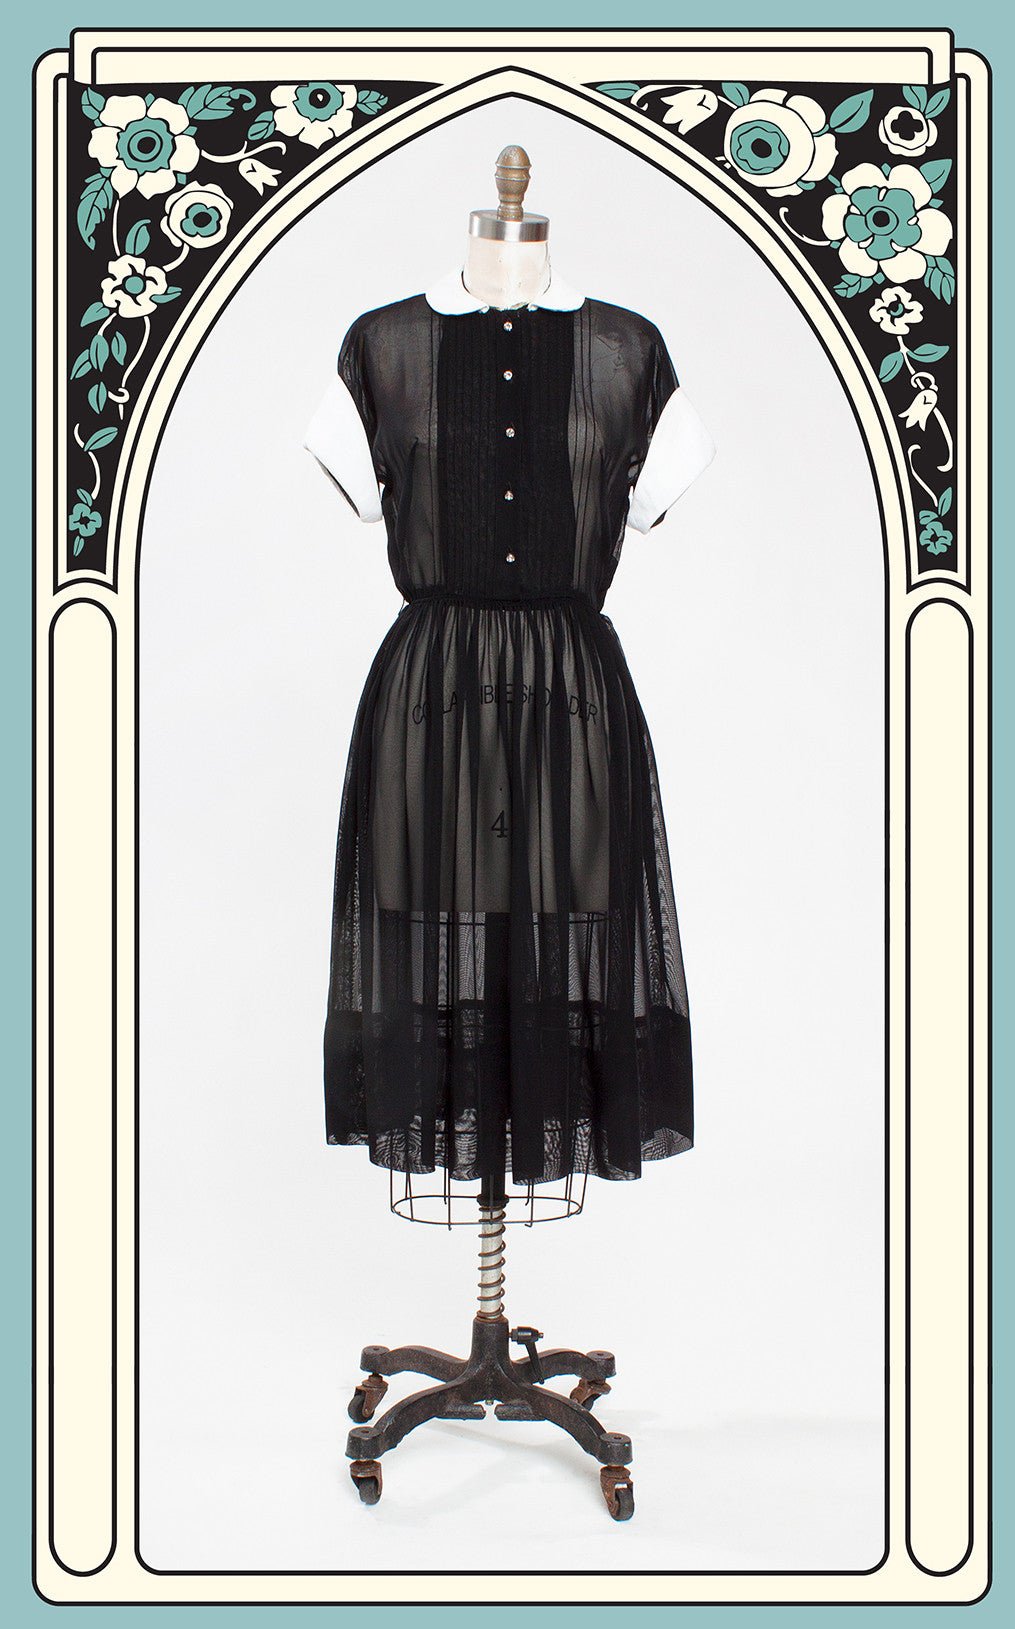 1950s Georgette Black Nylon Wednesday Addams Dress with White Pique Collar & Cuffs